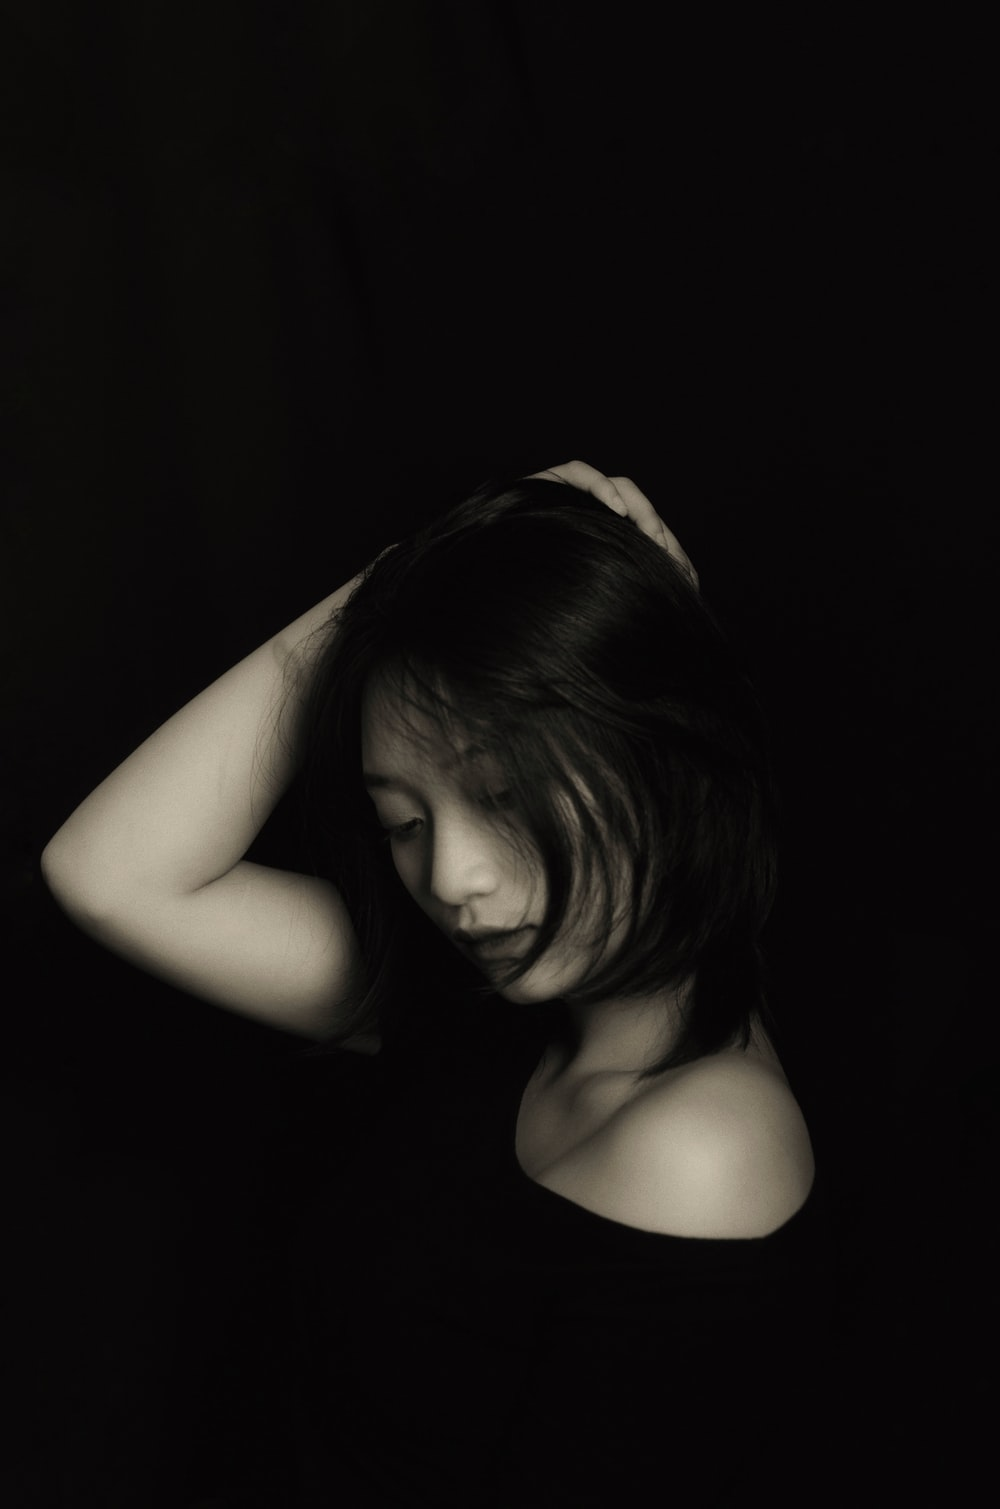 grayscale photography of woman wearing shirt touching her hair